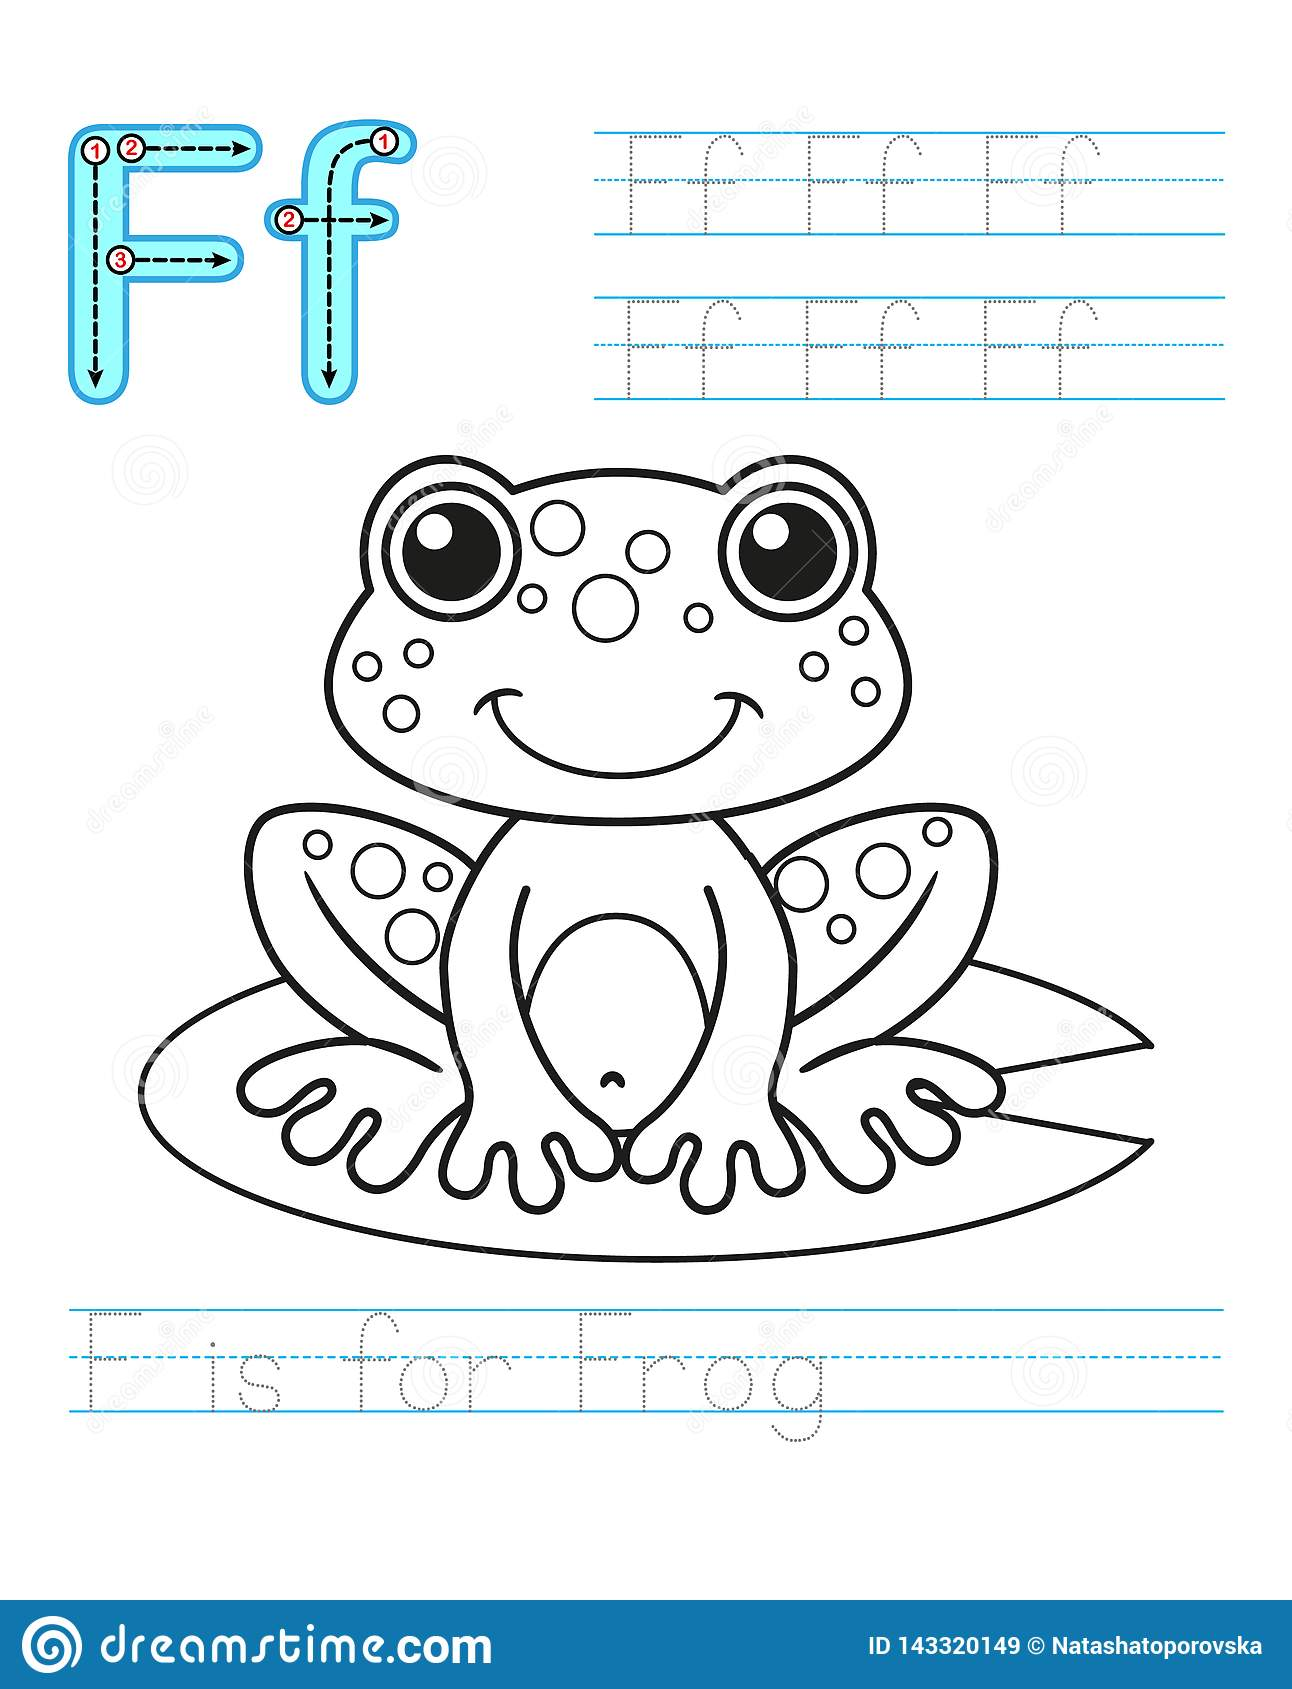 photograph relating to Alphabet Booklets Printable named Coloring Reserve Website page. Printable Worksheet For Kindergarten And